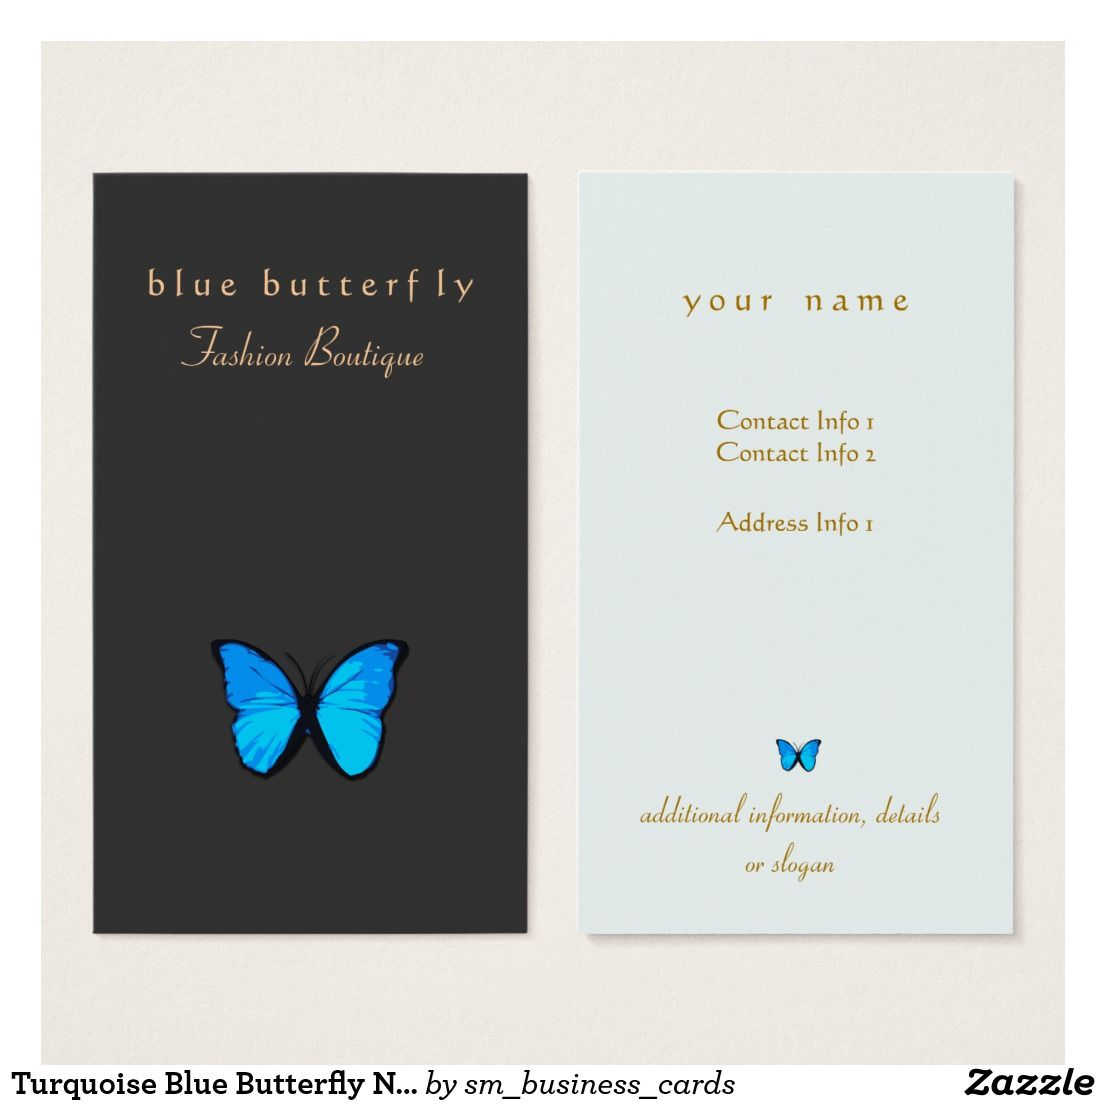 Pin by Bethany Christian on Business Cards | Pinterest | Blue ...